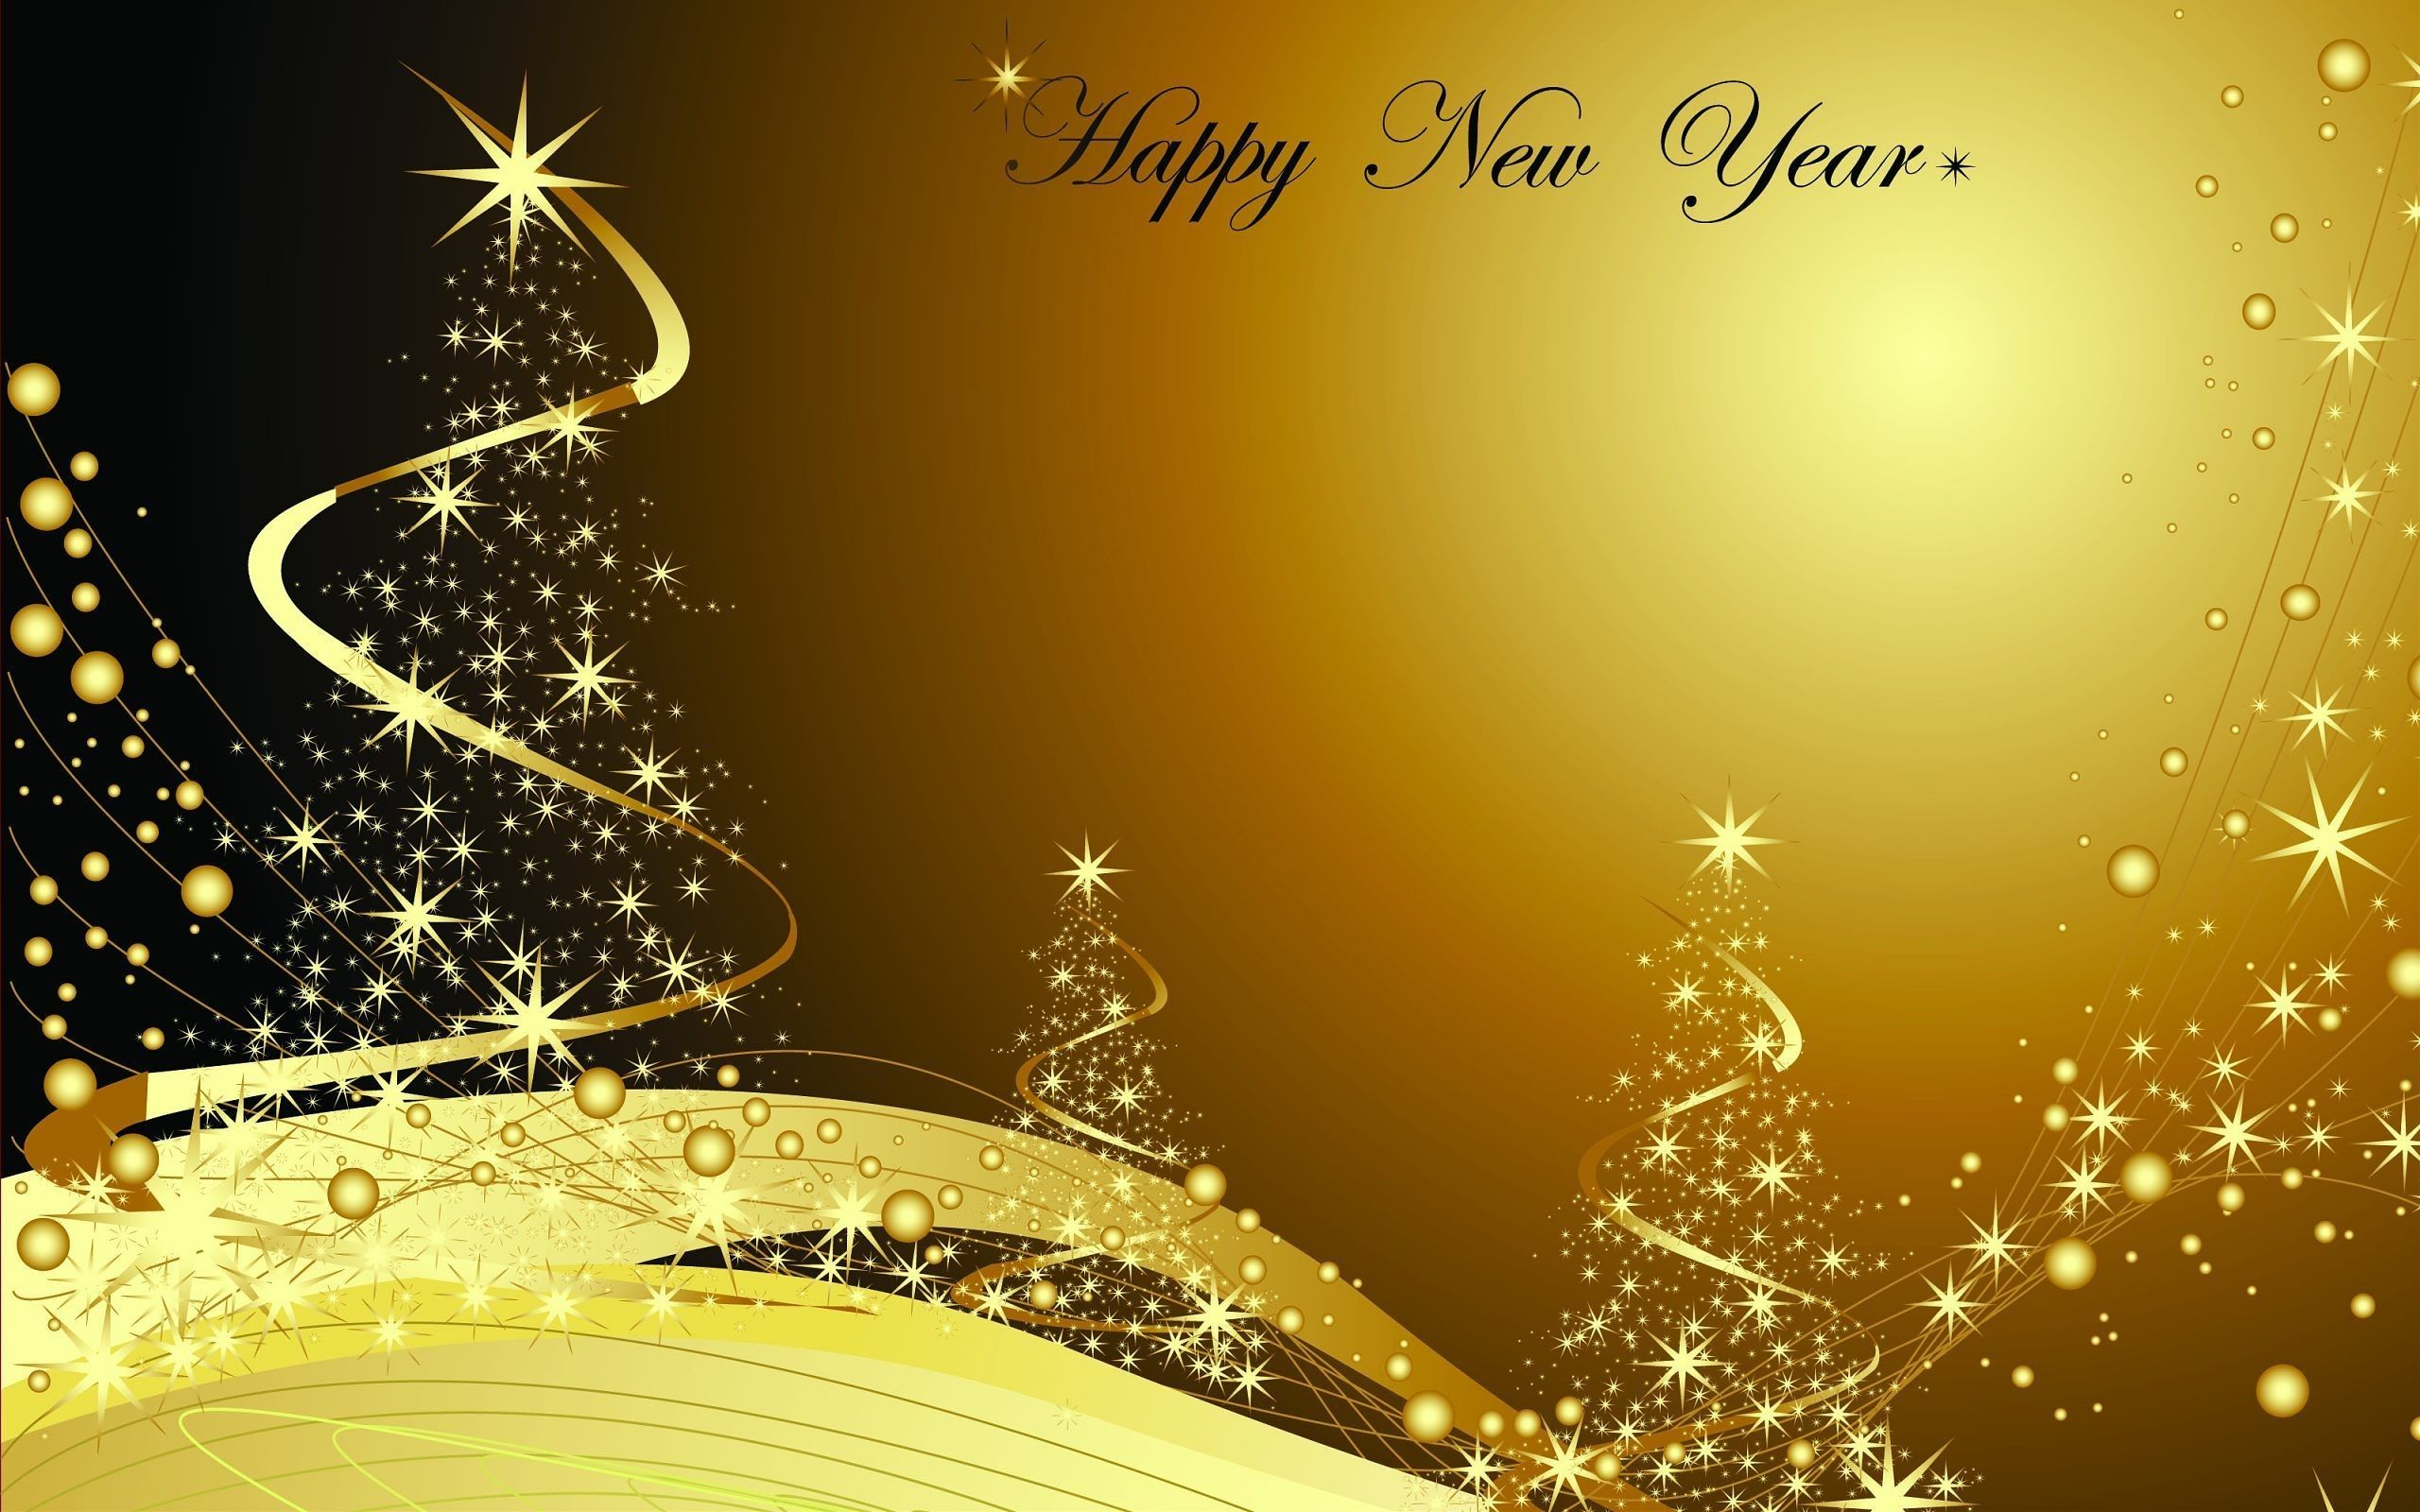 happy new year 2016 hindi sms shayari messages wishes images hd wallpapers qu...